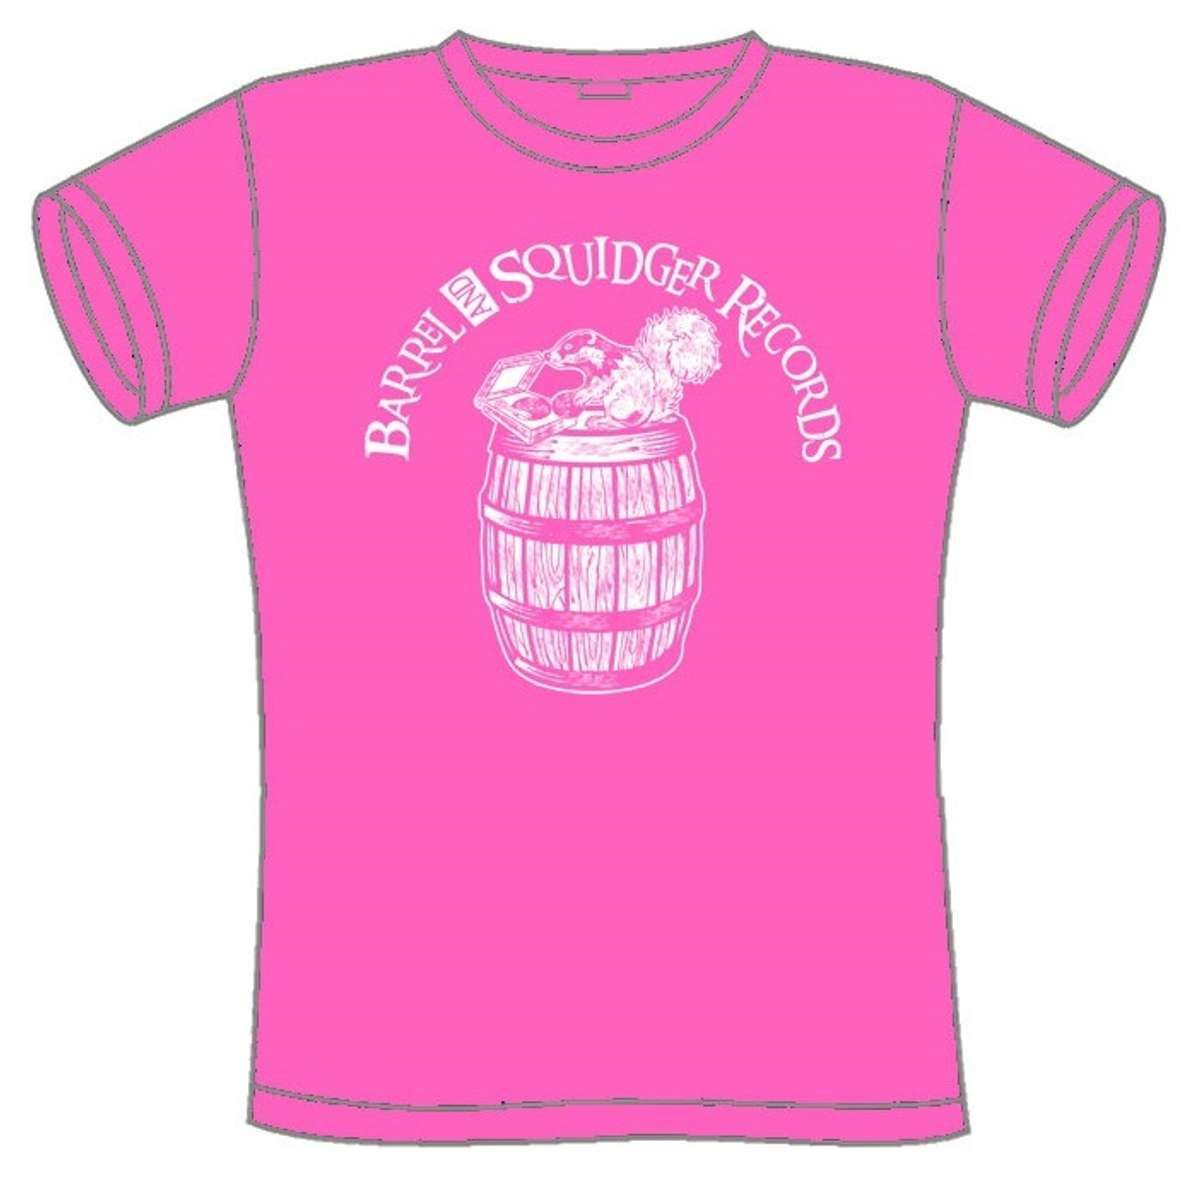 Barrel And Squidger Records - Ladies' T-shirt - Barrel And Squidger Records